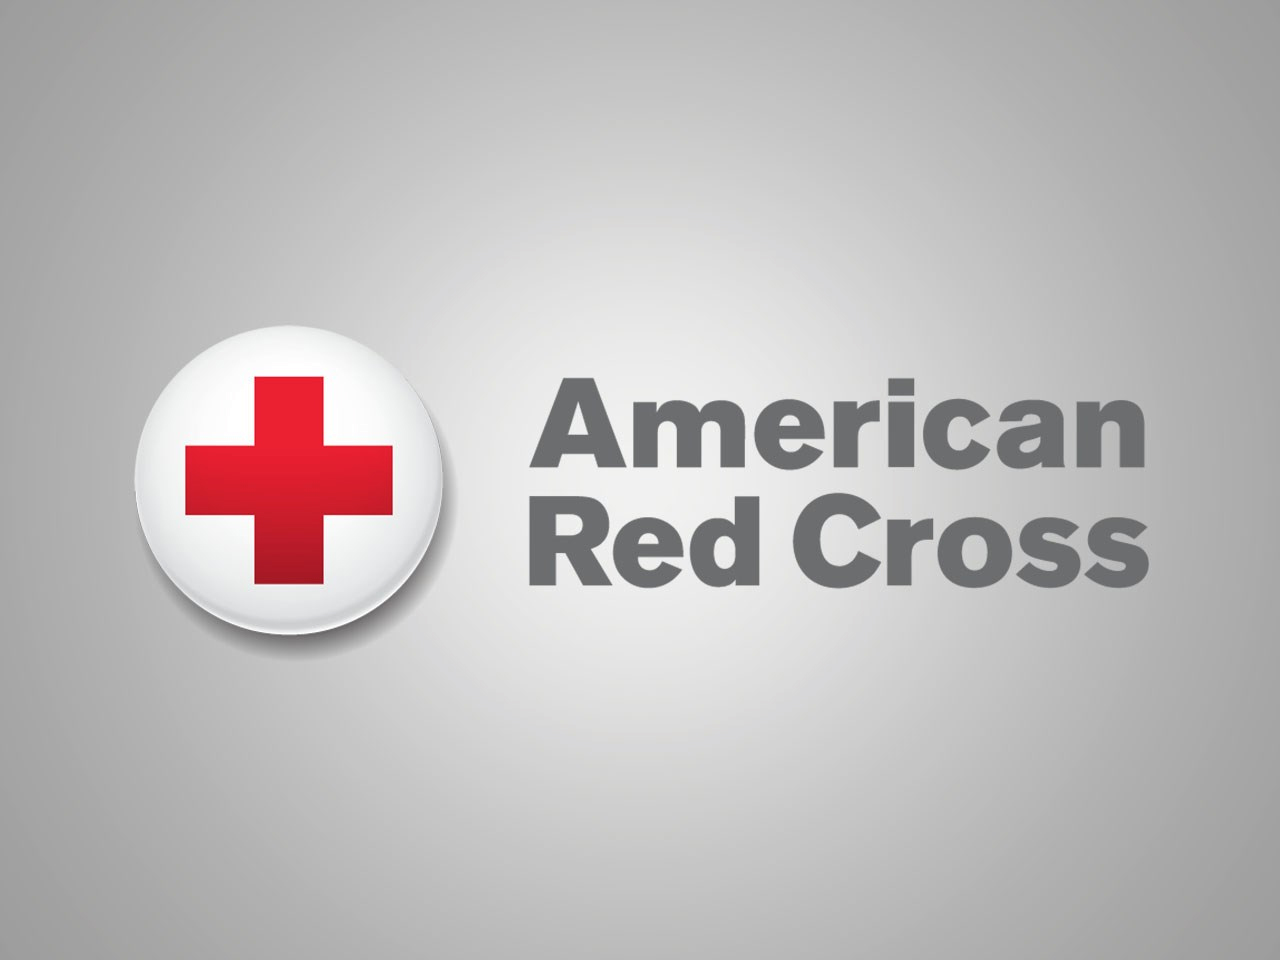 red cross logo_1514523343137.jpg.jpg